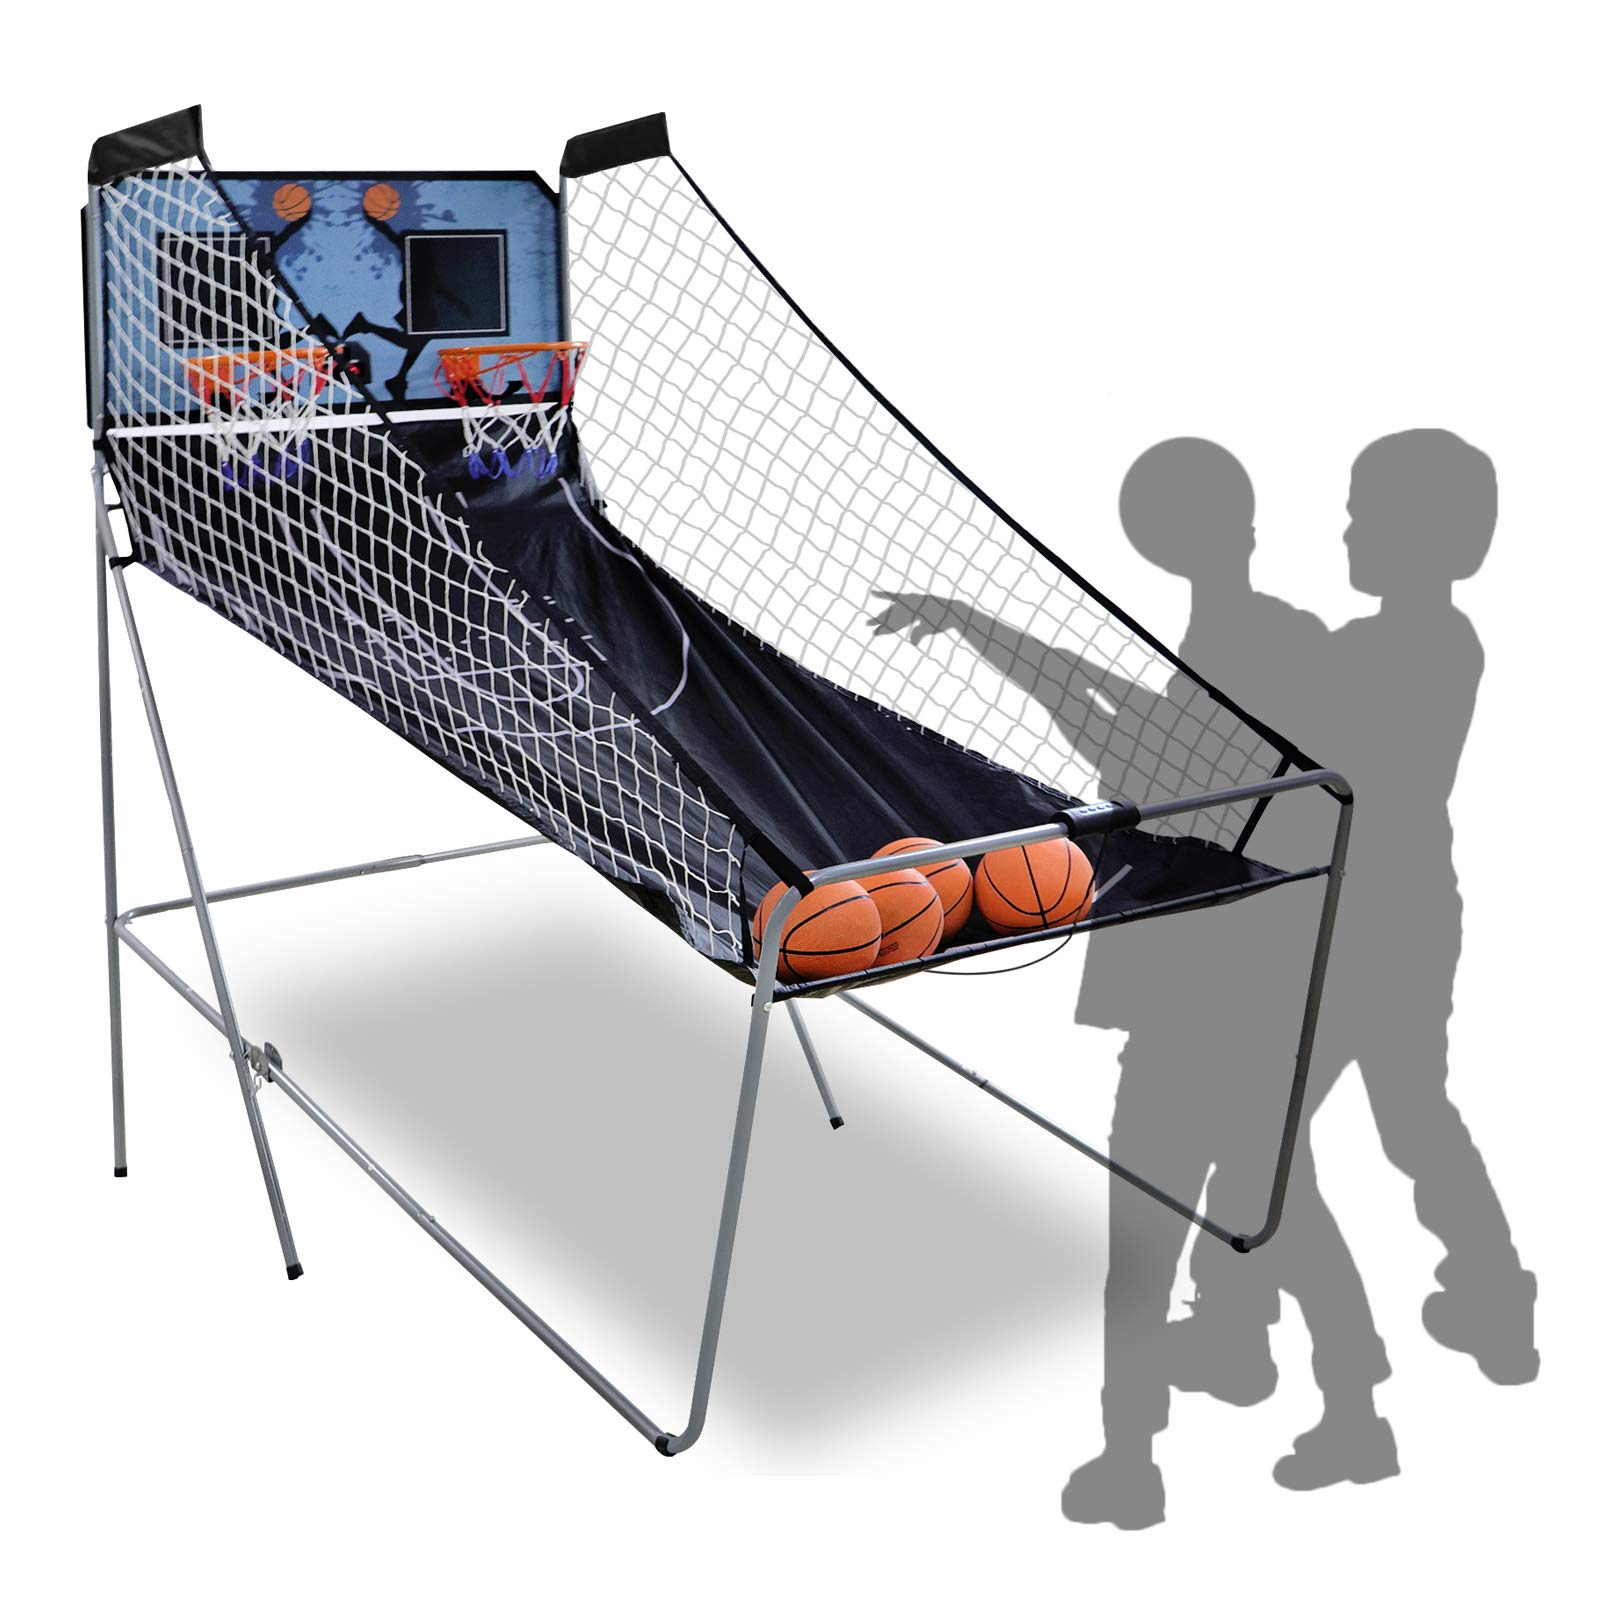 Nouva Foldable Electronic Basketball Games,Double Shotout Basketball Arcade Game with Electronic Scoreboard 4 Balls Inflation Pump for Official HomeIndoor by Nouva